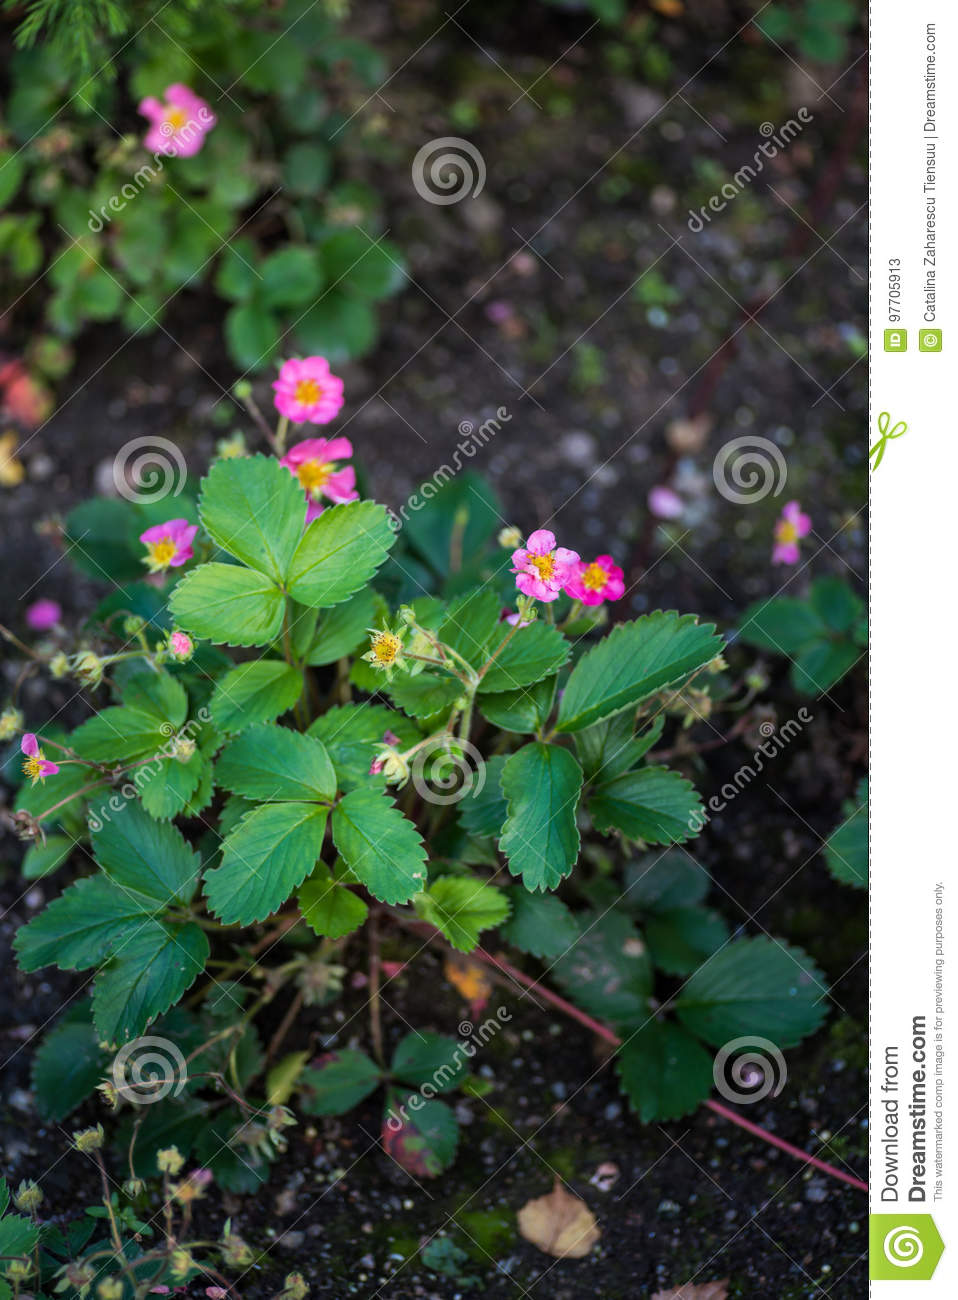 Strawberry plant with pink flowers stock image image of dark strawberry plant with pink flowers mightylinksfo Gallery